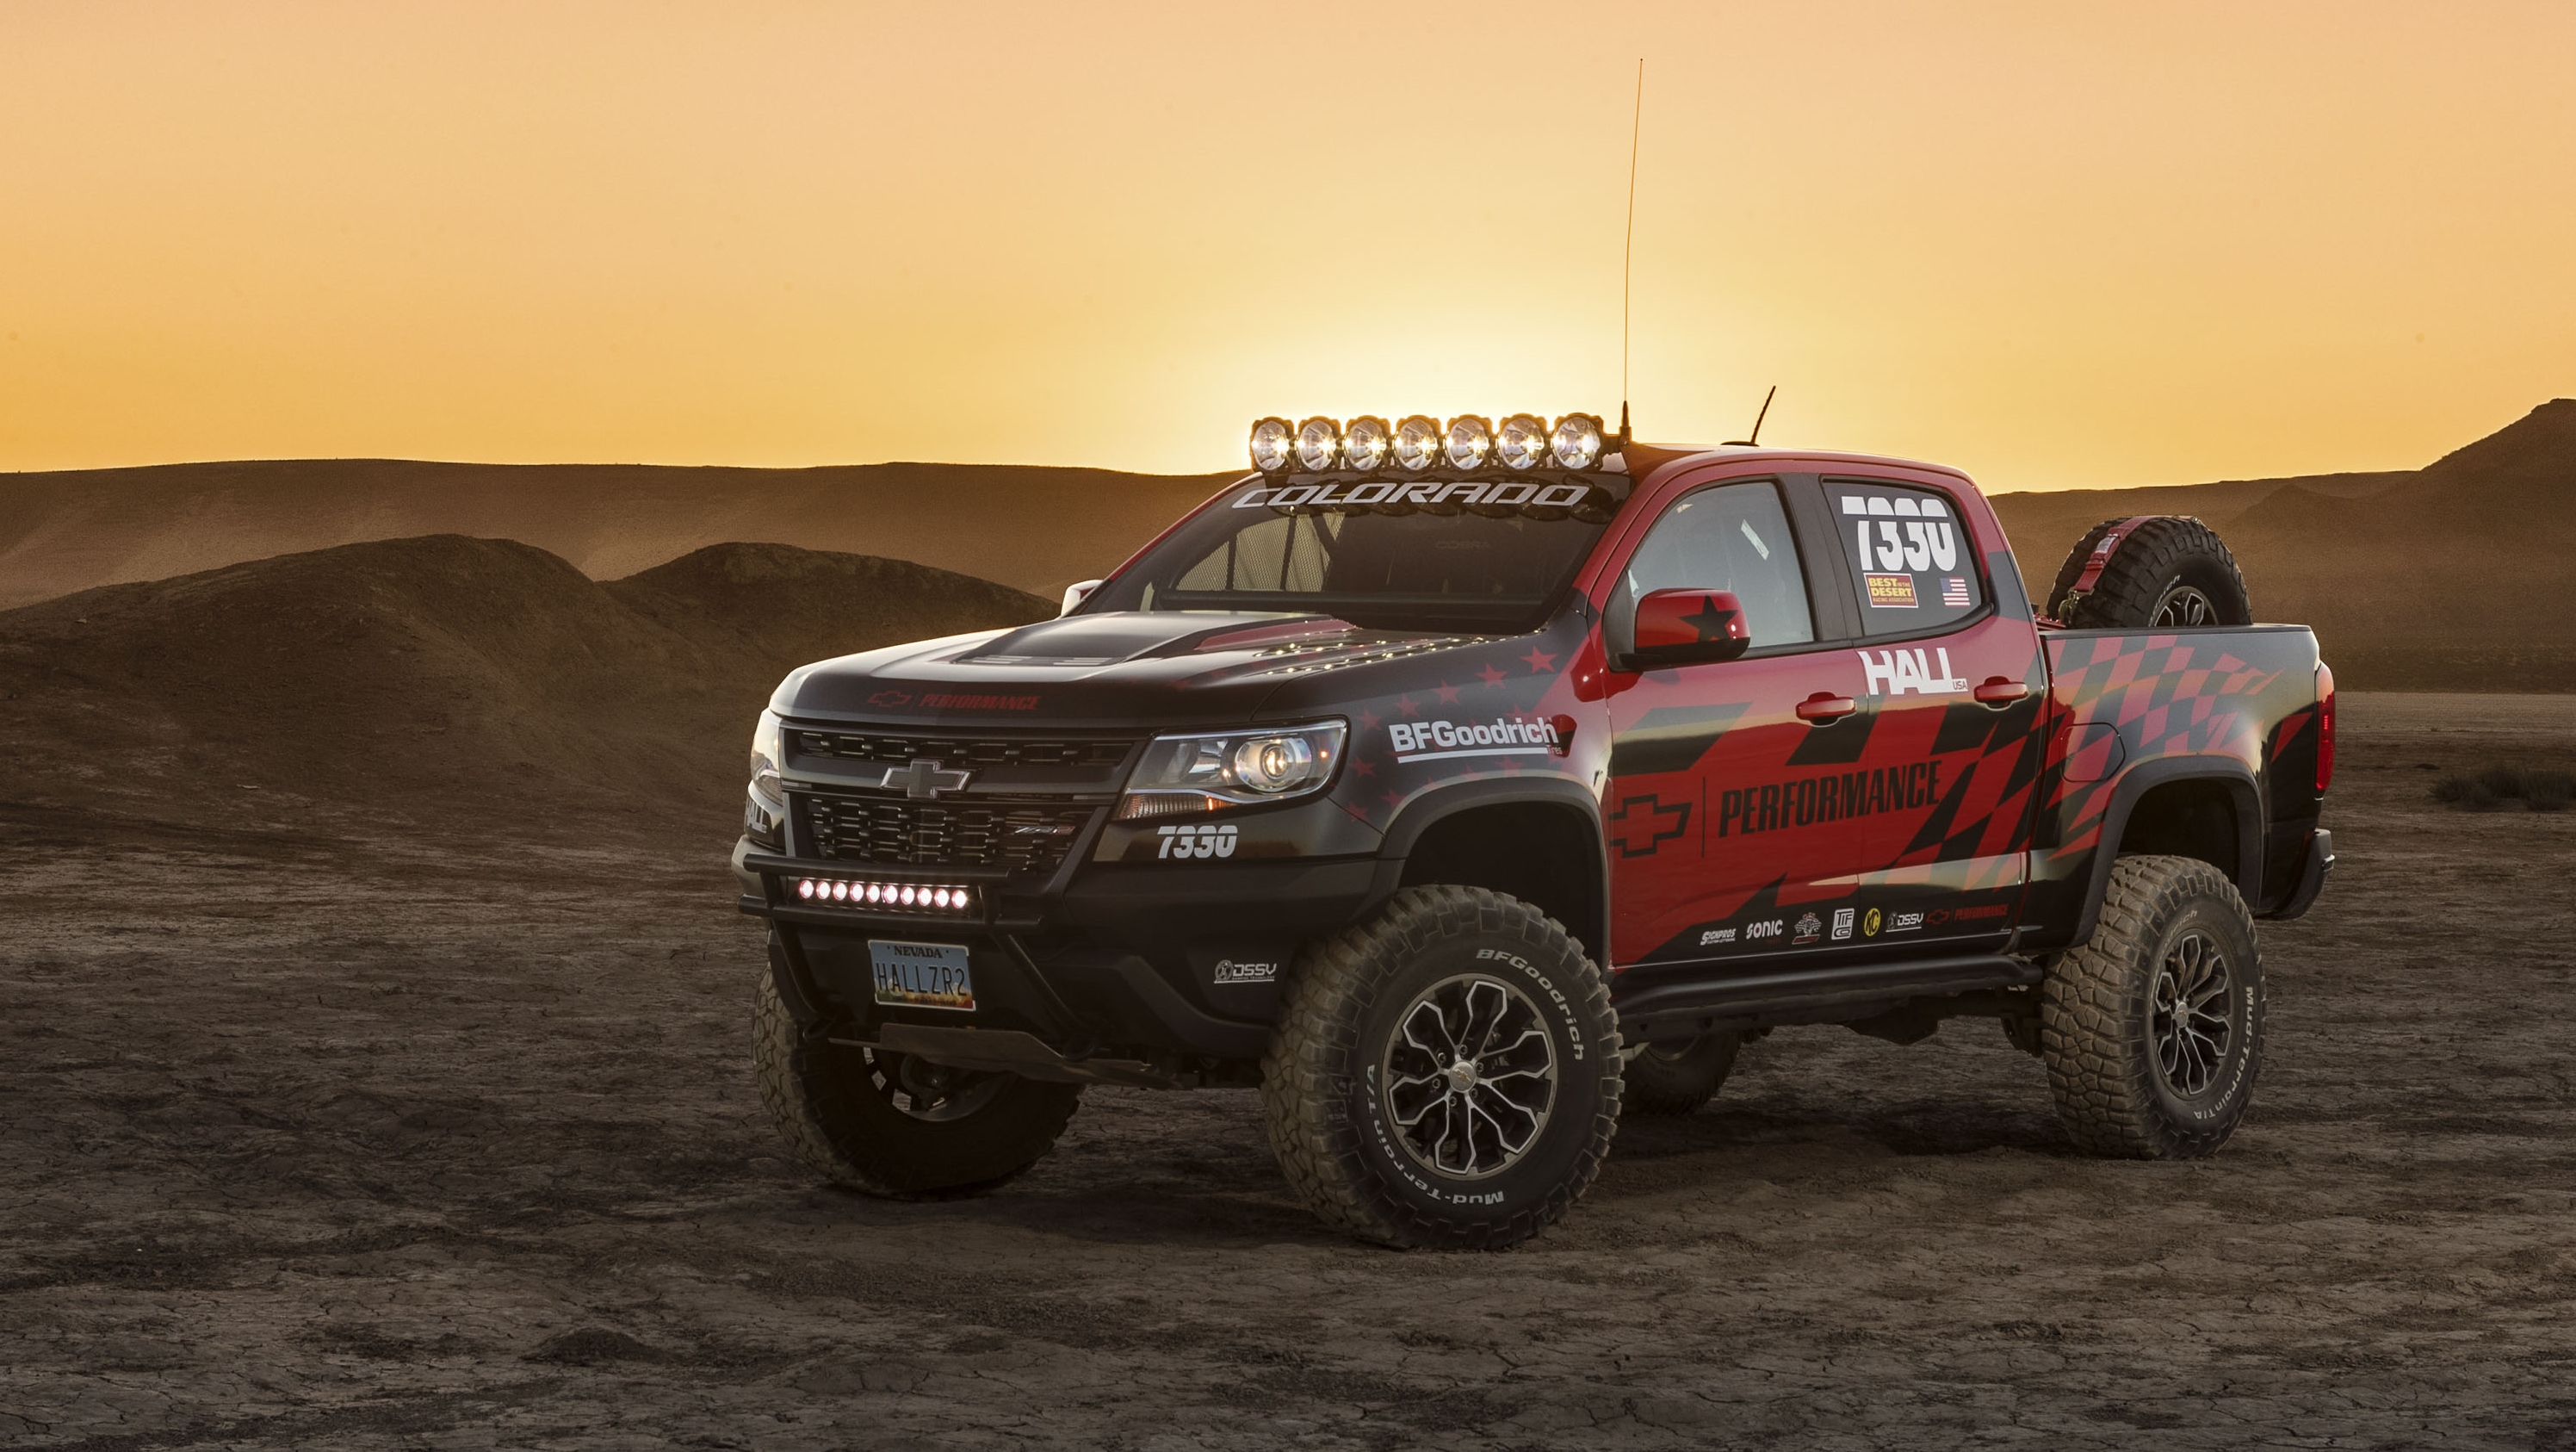 The chevy colorado zr2 will finally have a chance to prove its off road chops in a sanctioned race this weekend chad hall of hall racing will drive a